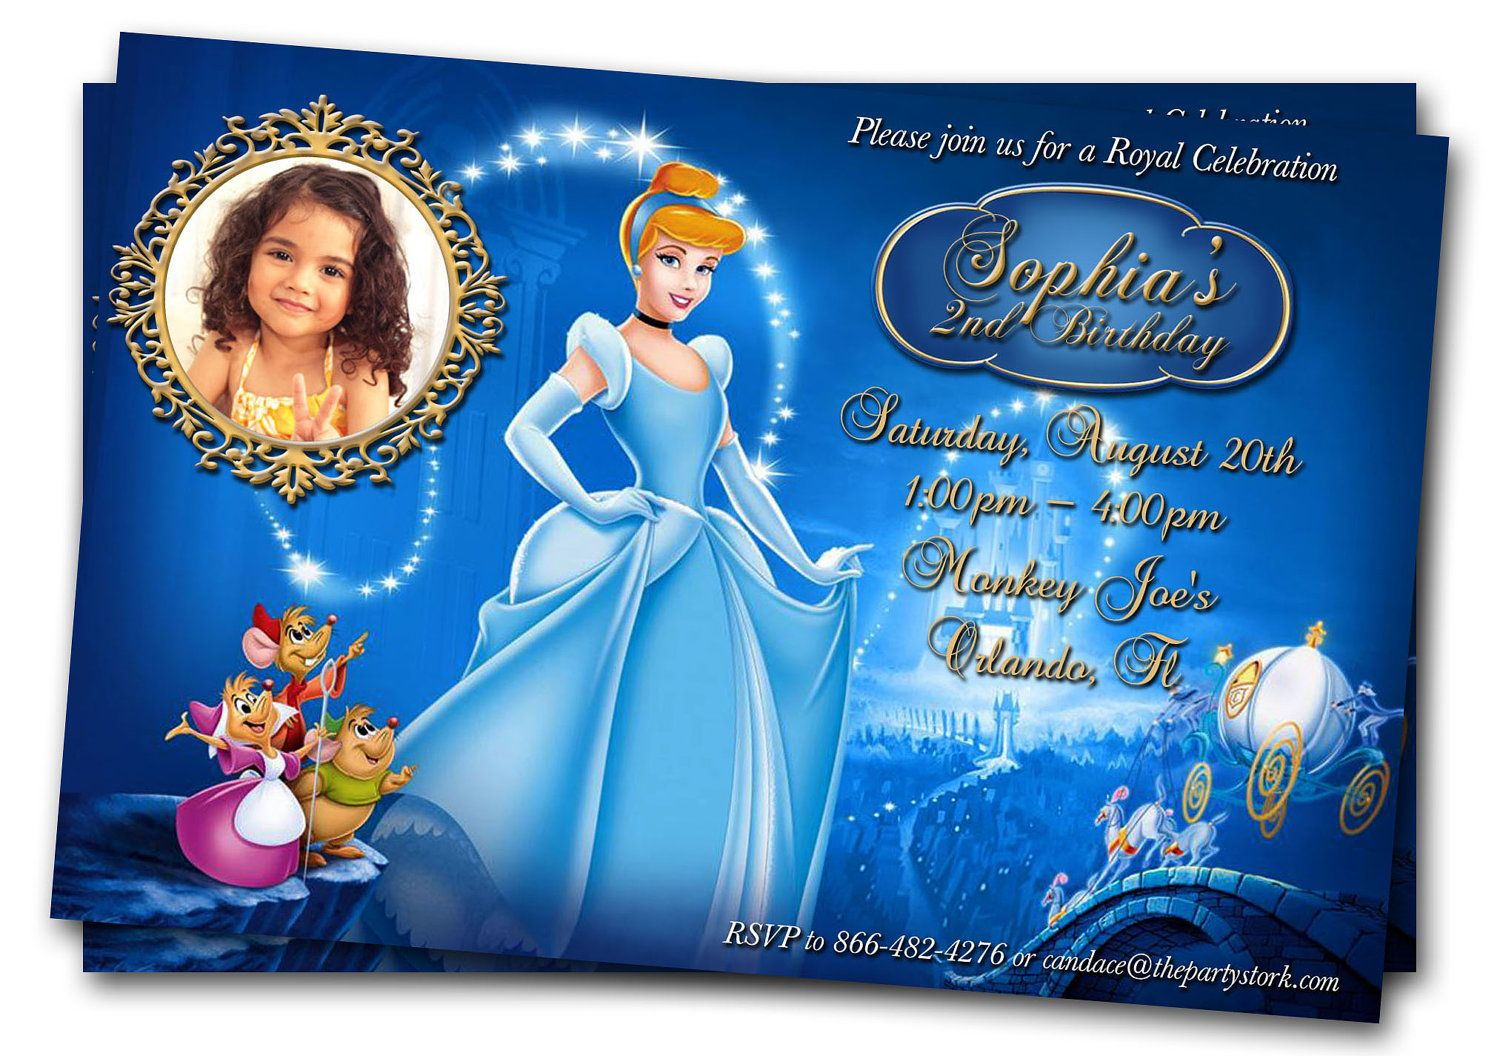 custom photo birthday party invitations ; 843075ebbc90d2c834f894ec67f0c3c1